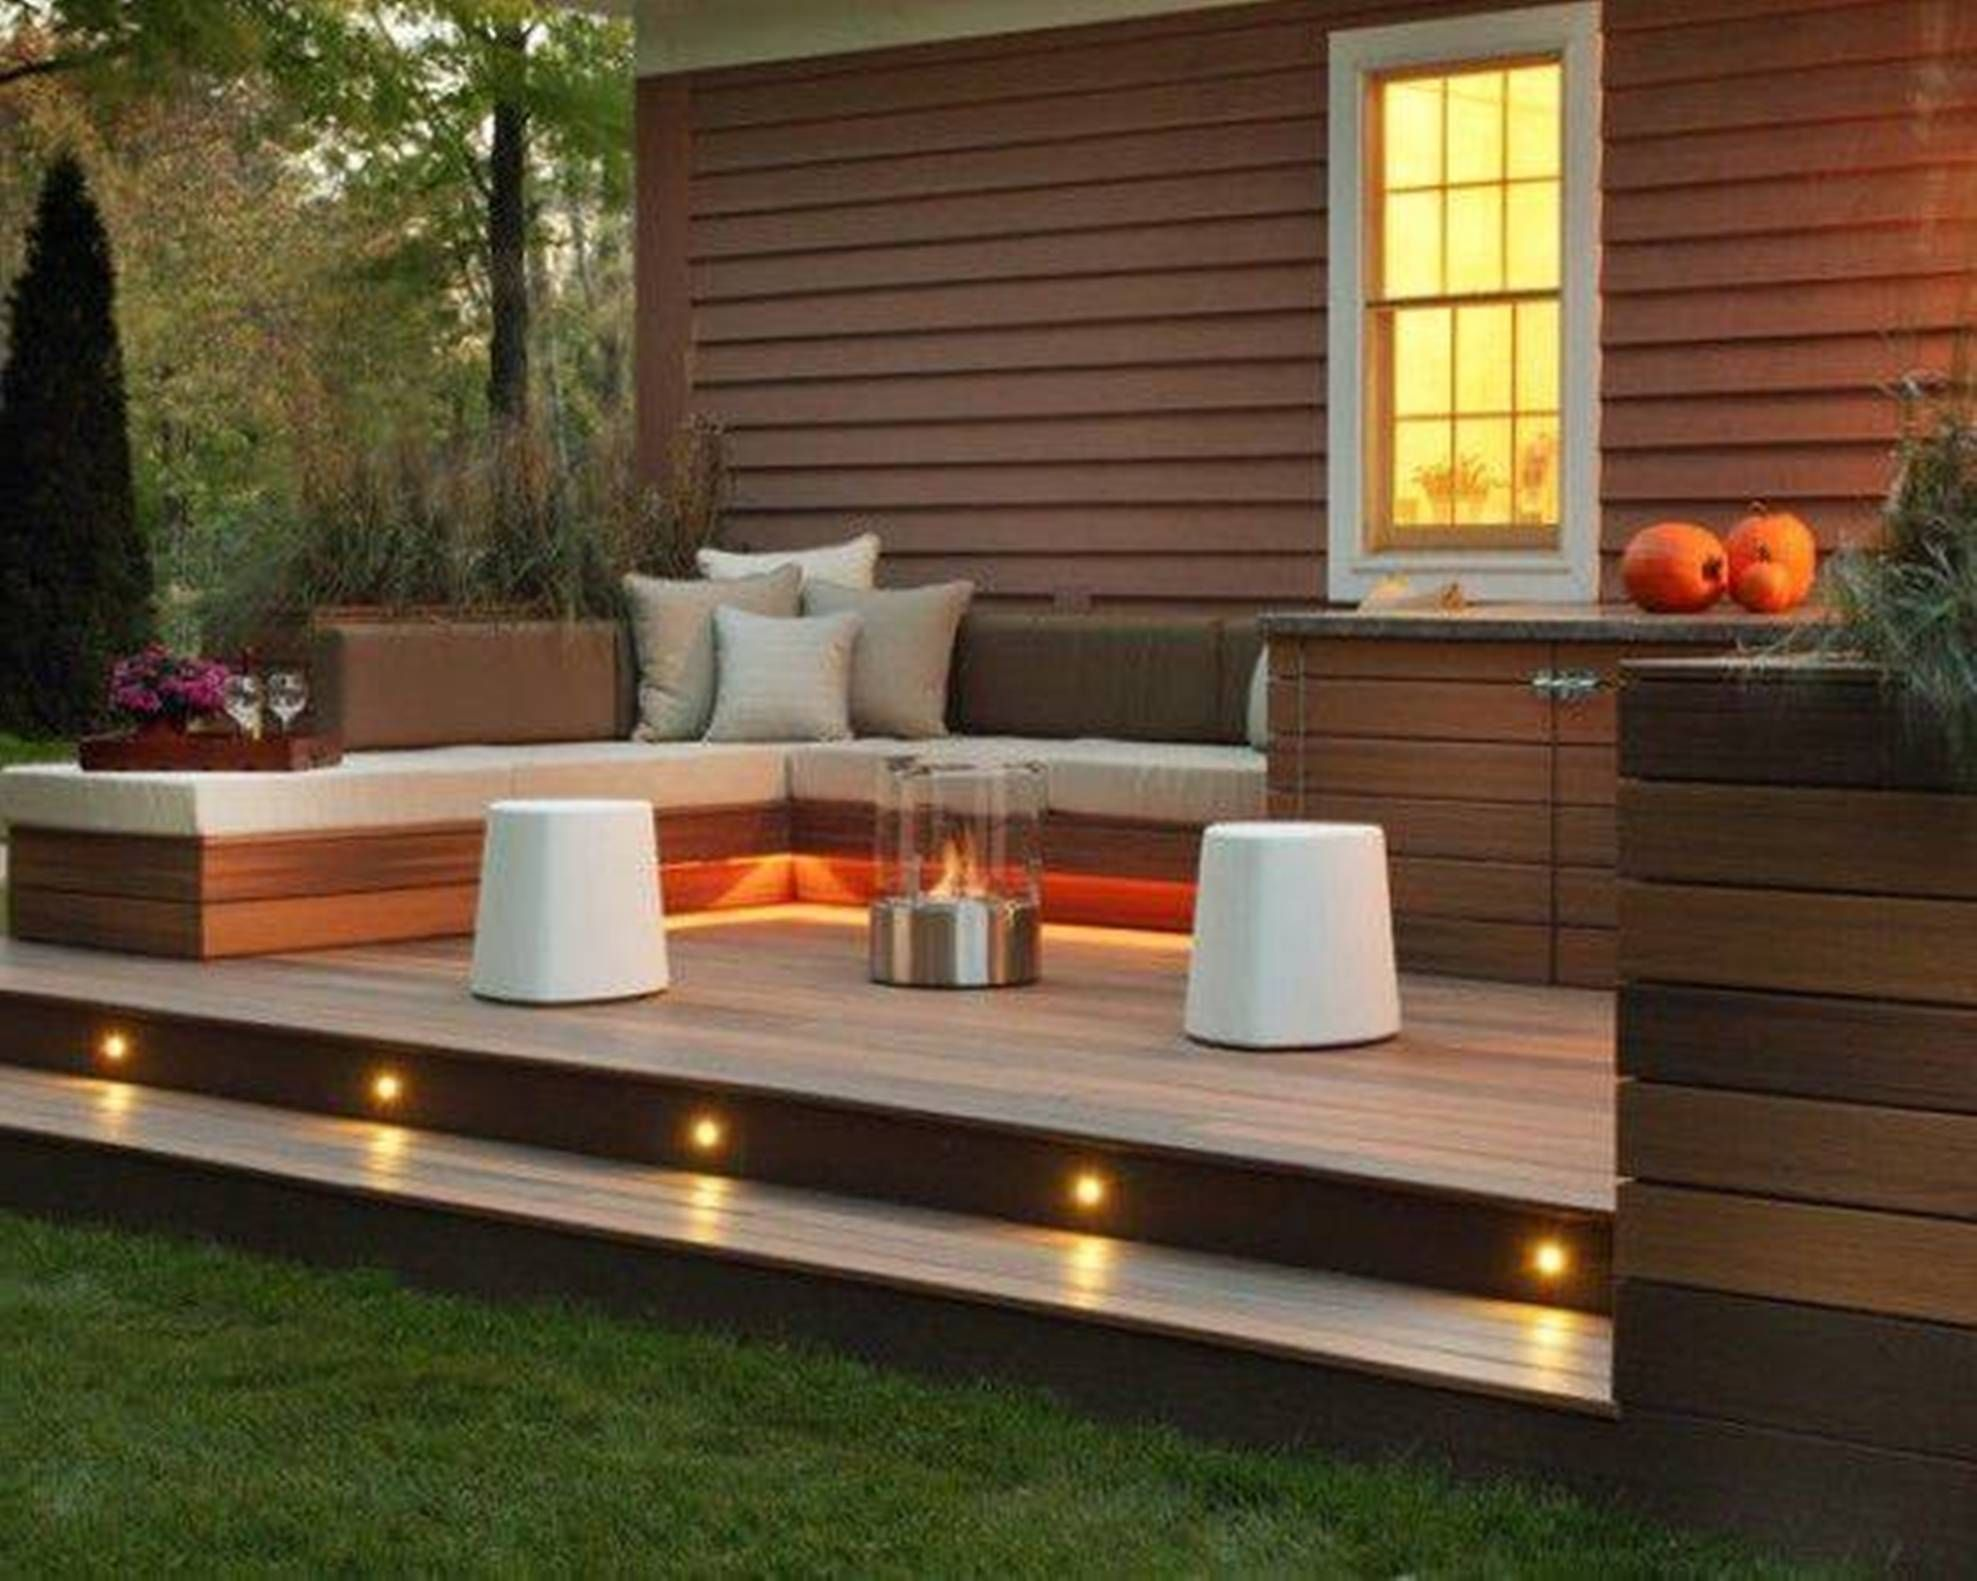 Ideas For Deck Designs cool outdoor deck design Landscaping And Outdoor Building Great Small Backyard Deck Designs Small Backyard Deck Designs With